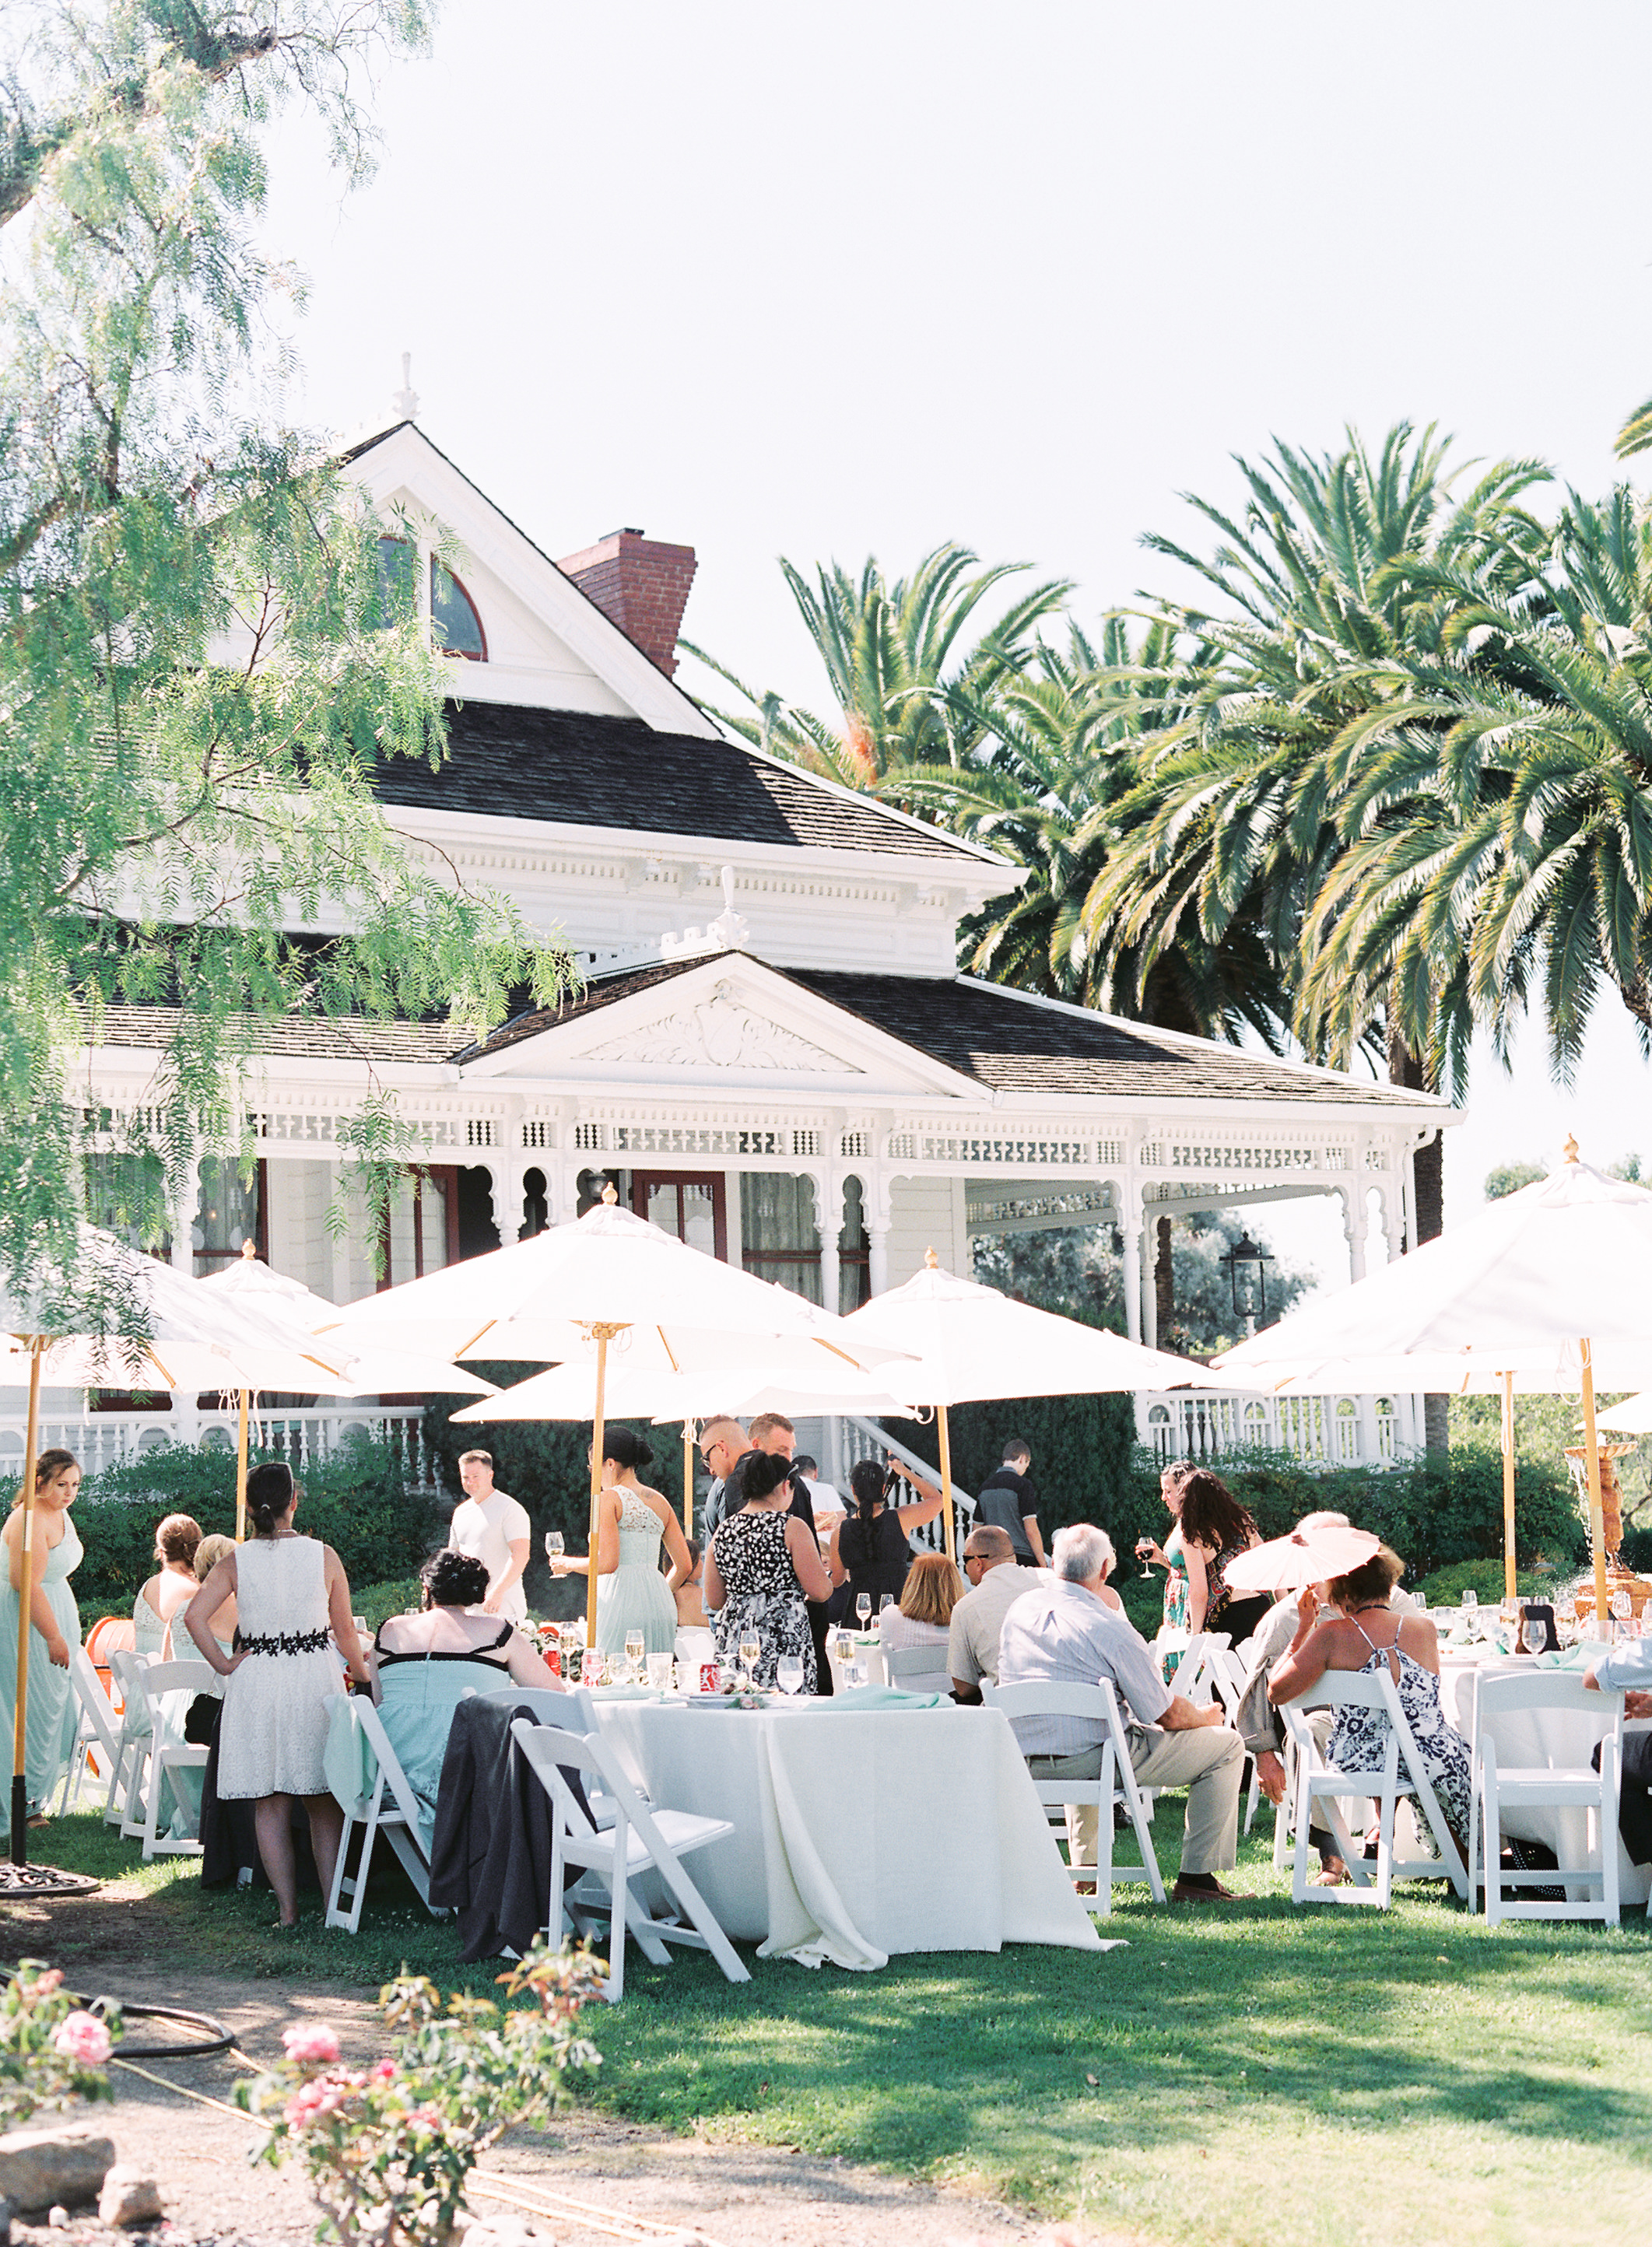 southern-inspired-wedding-at-ravenswood-historic-site-008-2.jpg